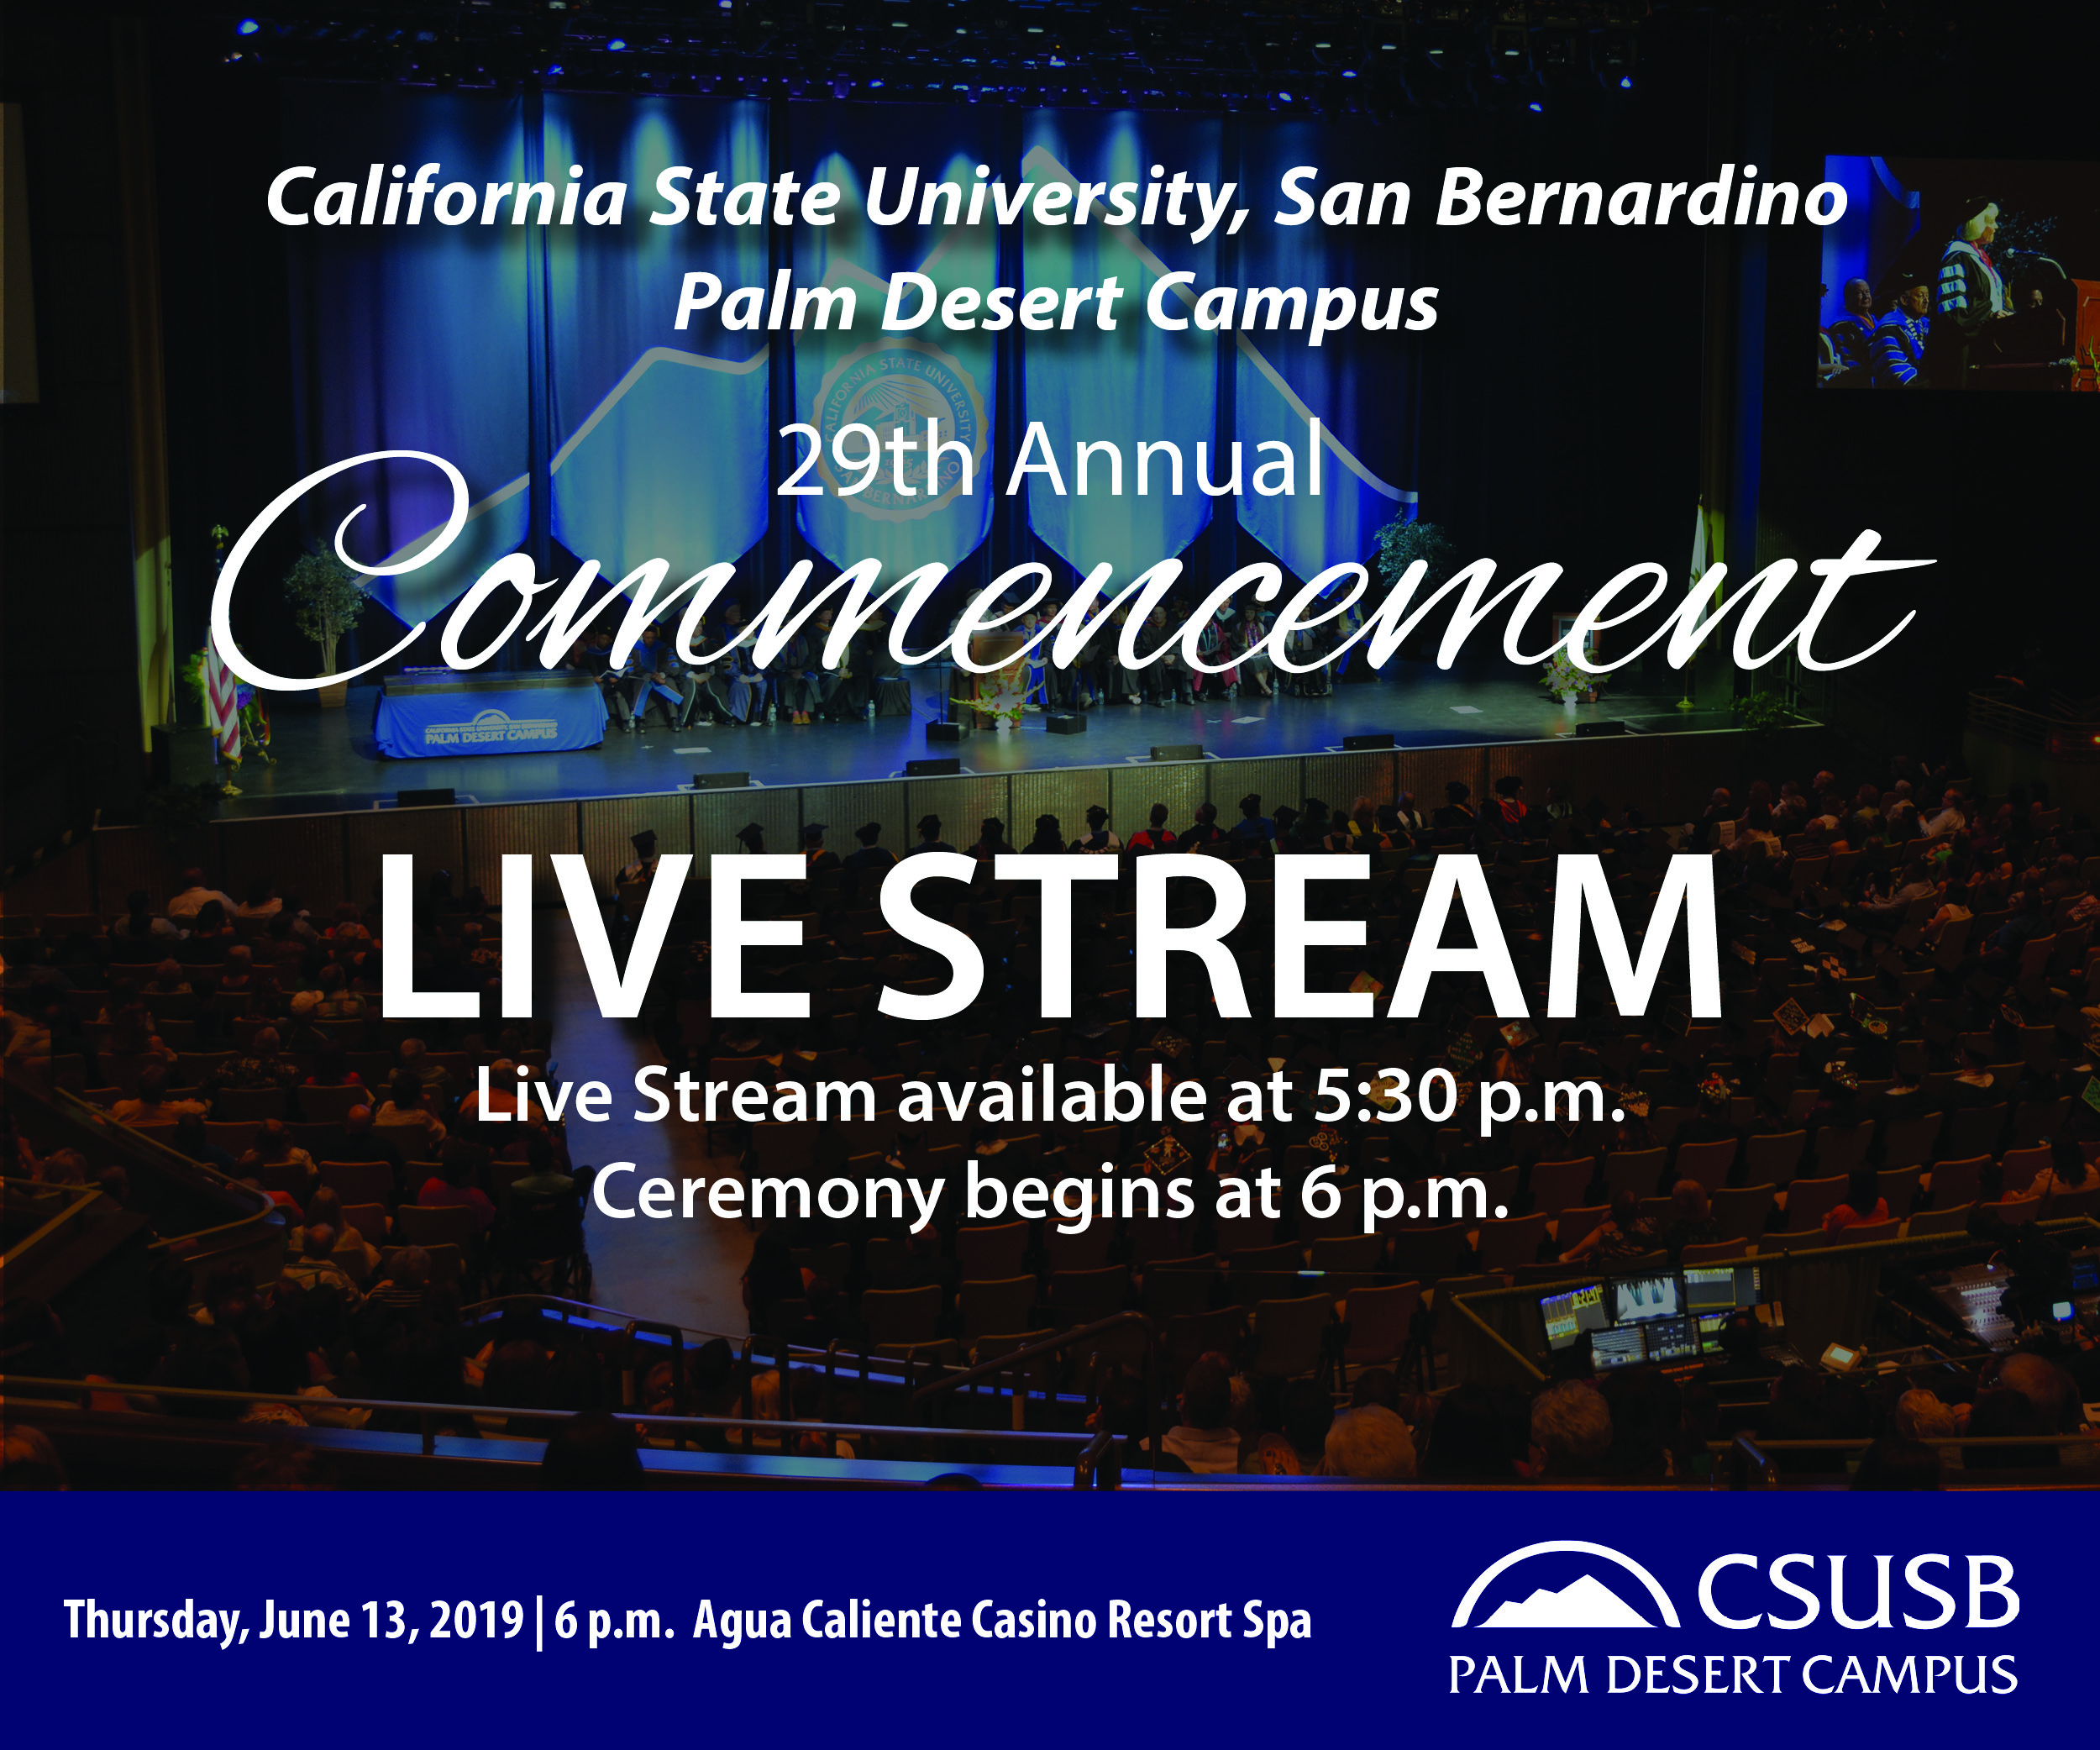 California State University, San Bernardino Palm Deser Campus 29th Annual Commencement Live Stream Live Stream available at 5:30pm Ceremony begins at 6pm